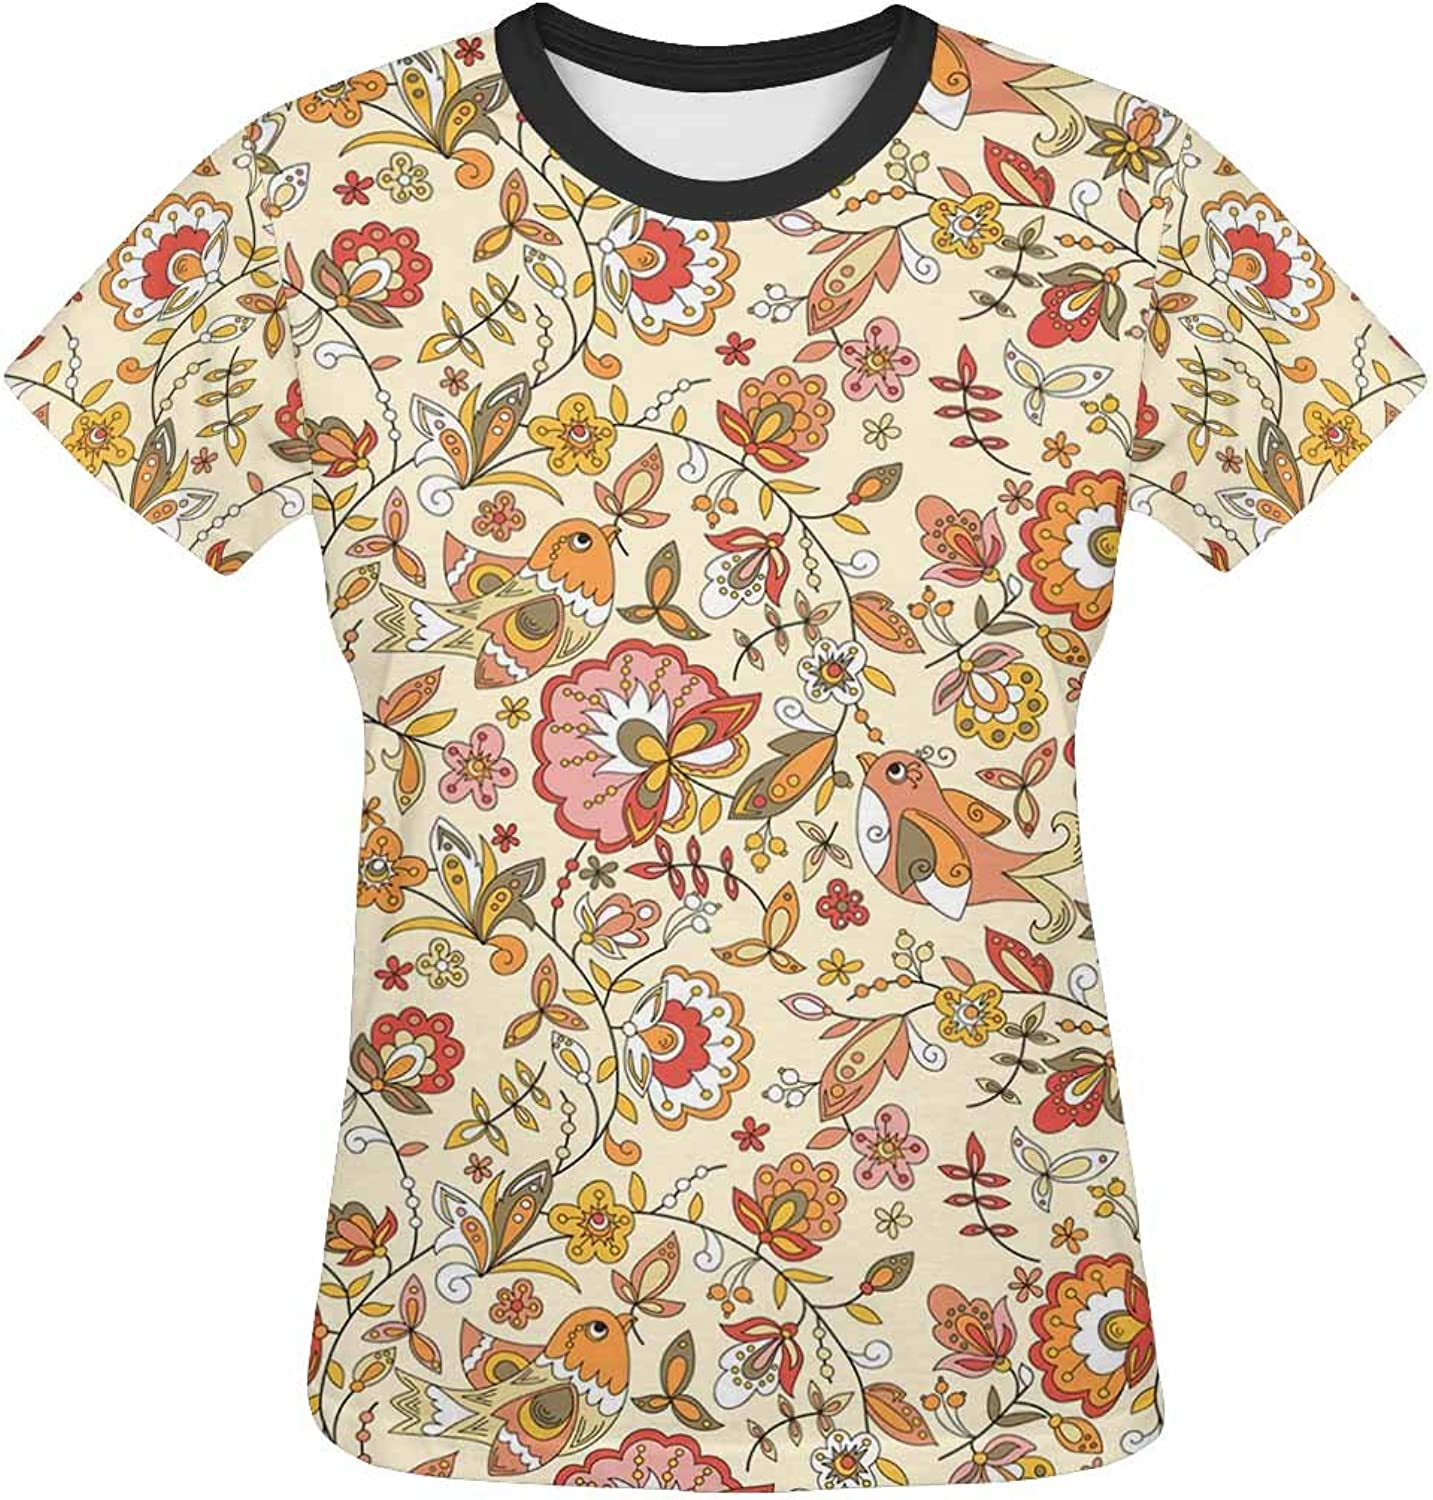 Womens Tops TShirts Print with Brown Flowers Birds